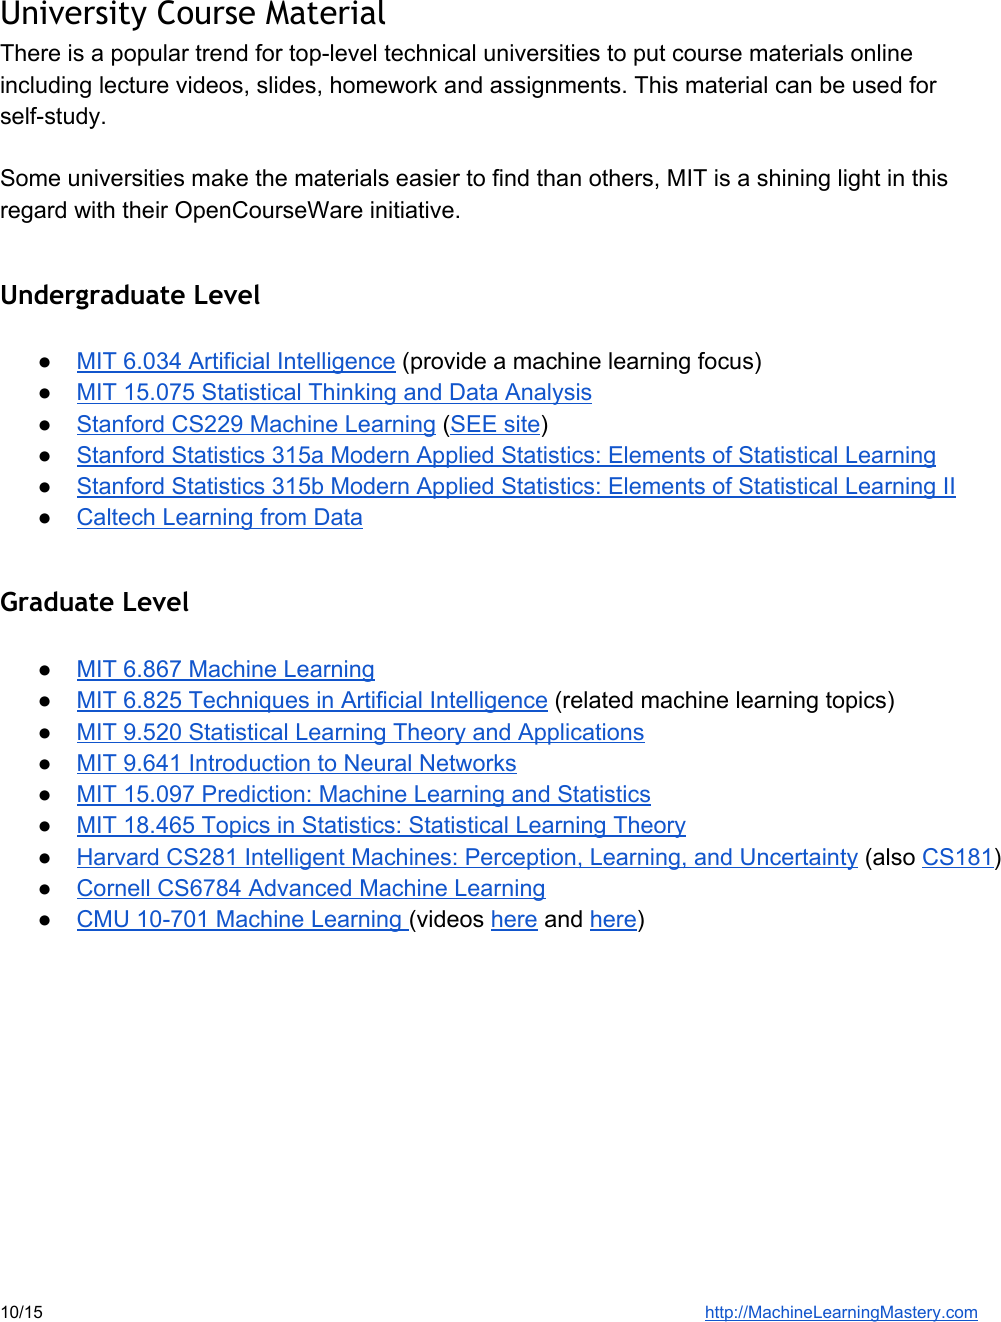 Machine Learning Resource Guide